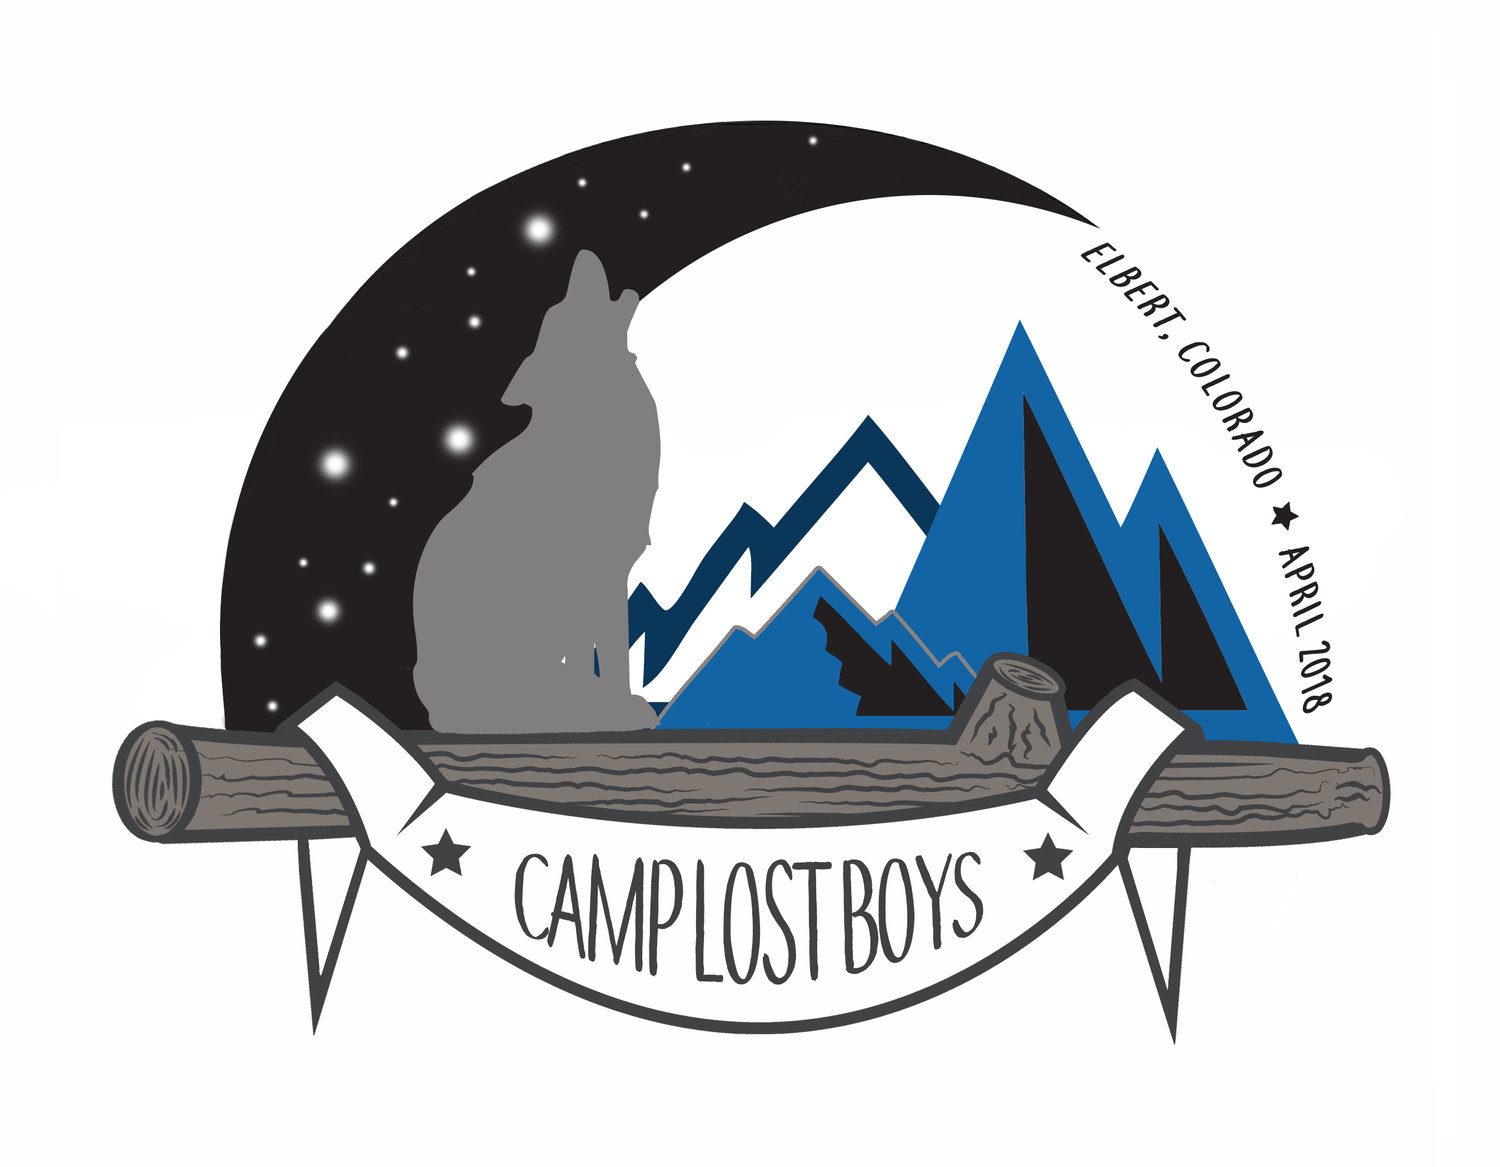 Camp Lost Boys